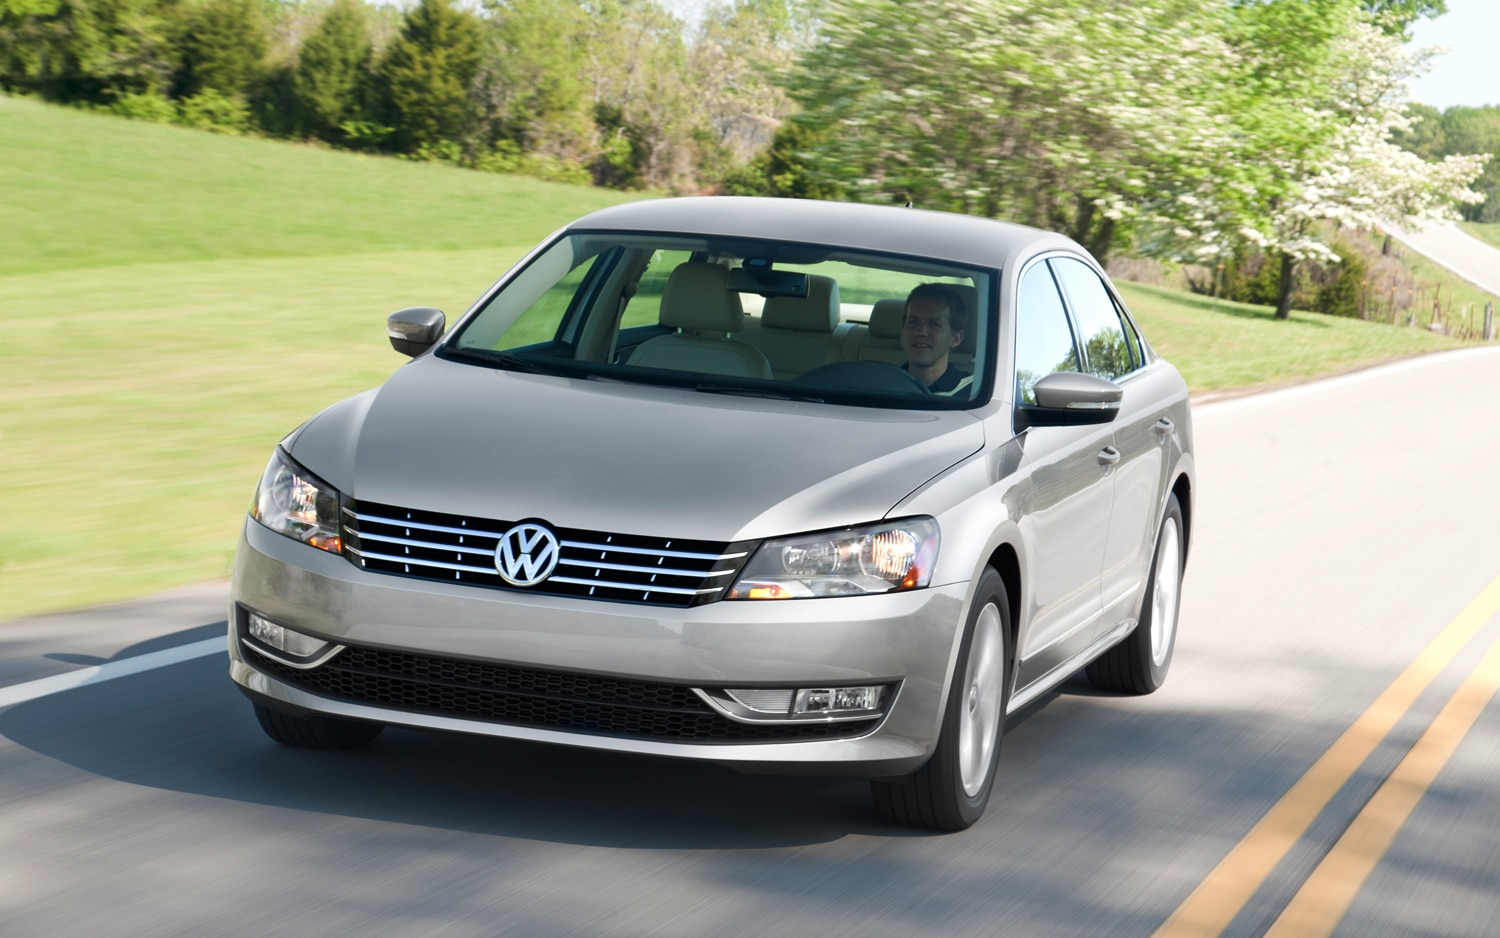 2012 Volkswagen Passat Front Three Quarter1